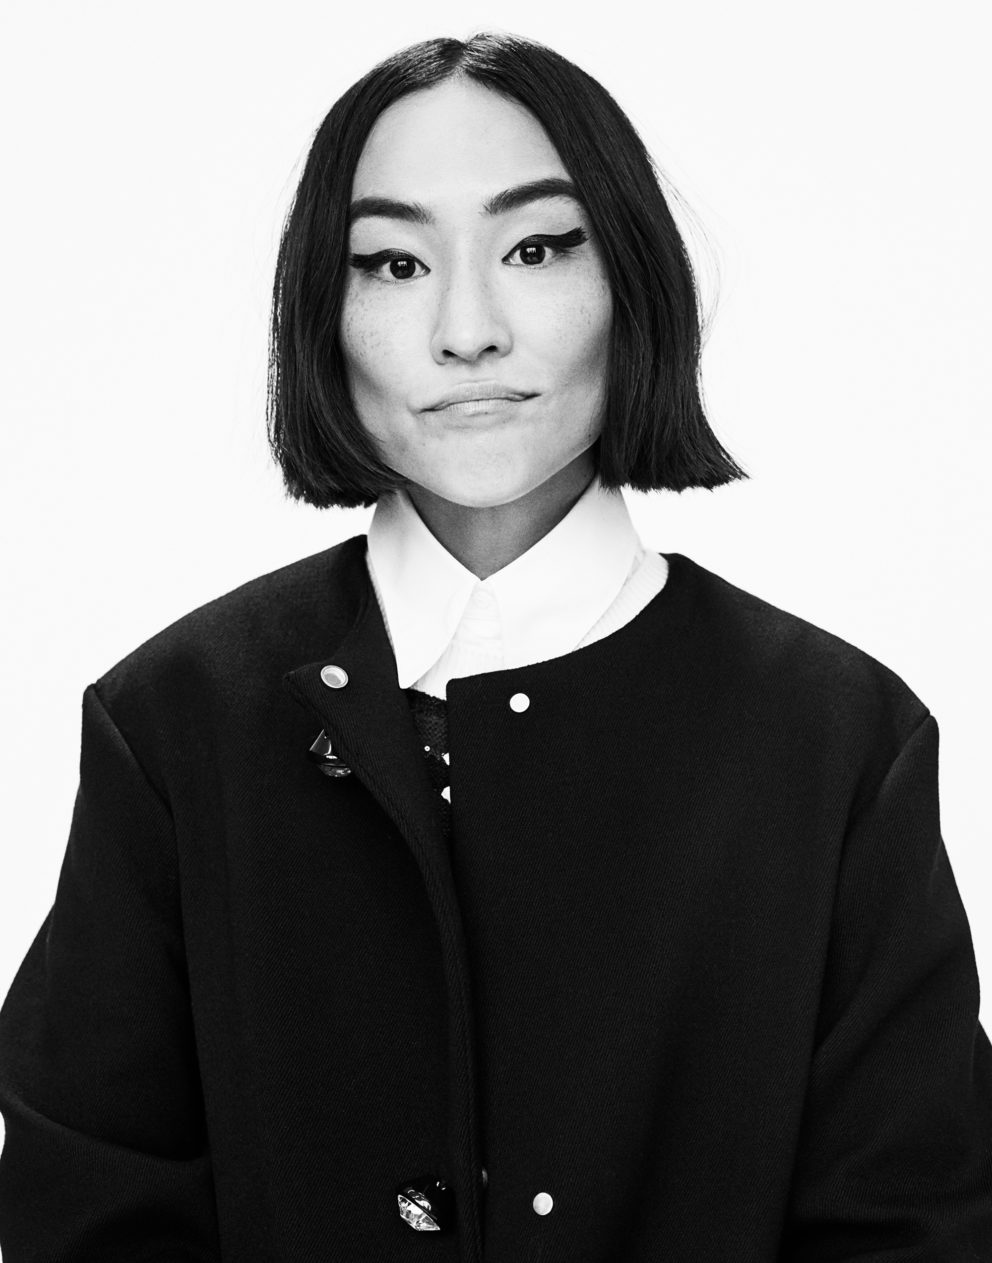 191020 0070 Sbjct Greta Lee 084 By Christian Chogstedt Web